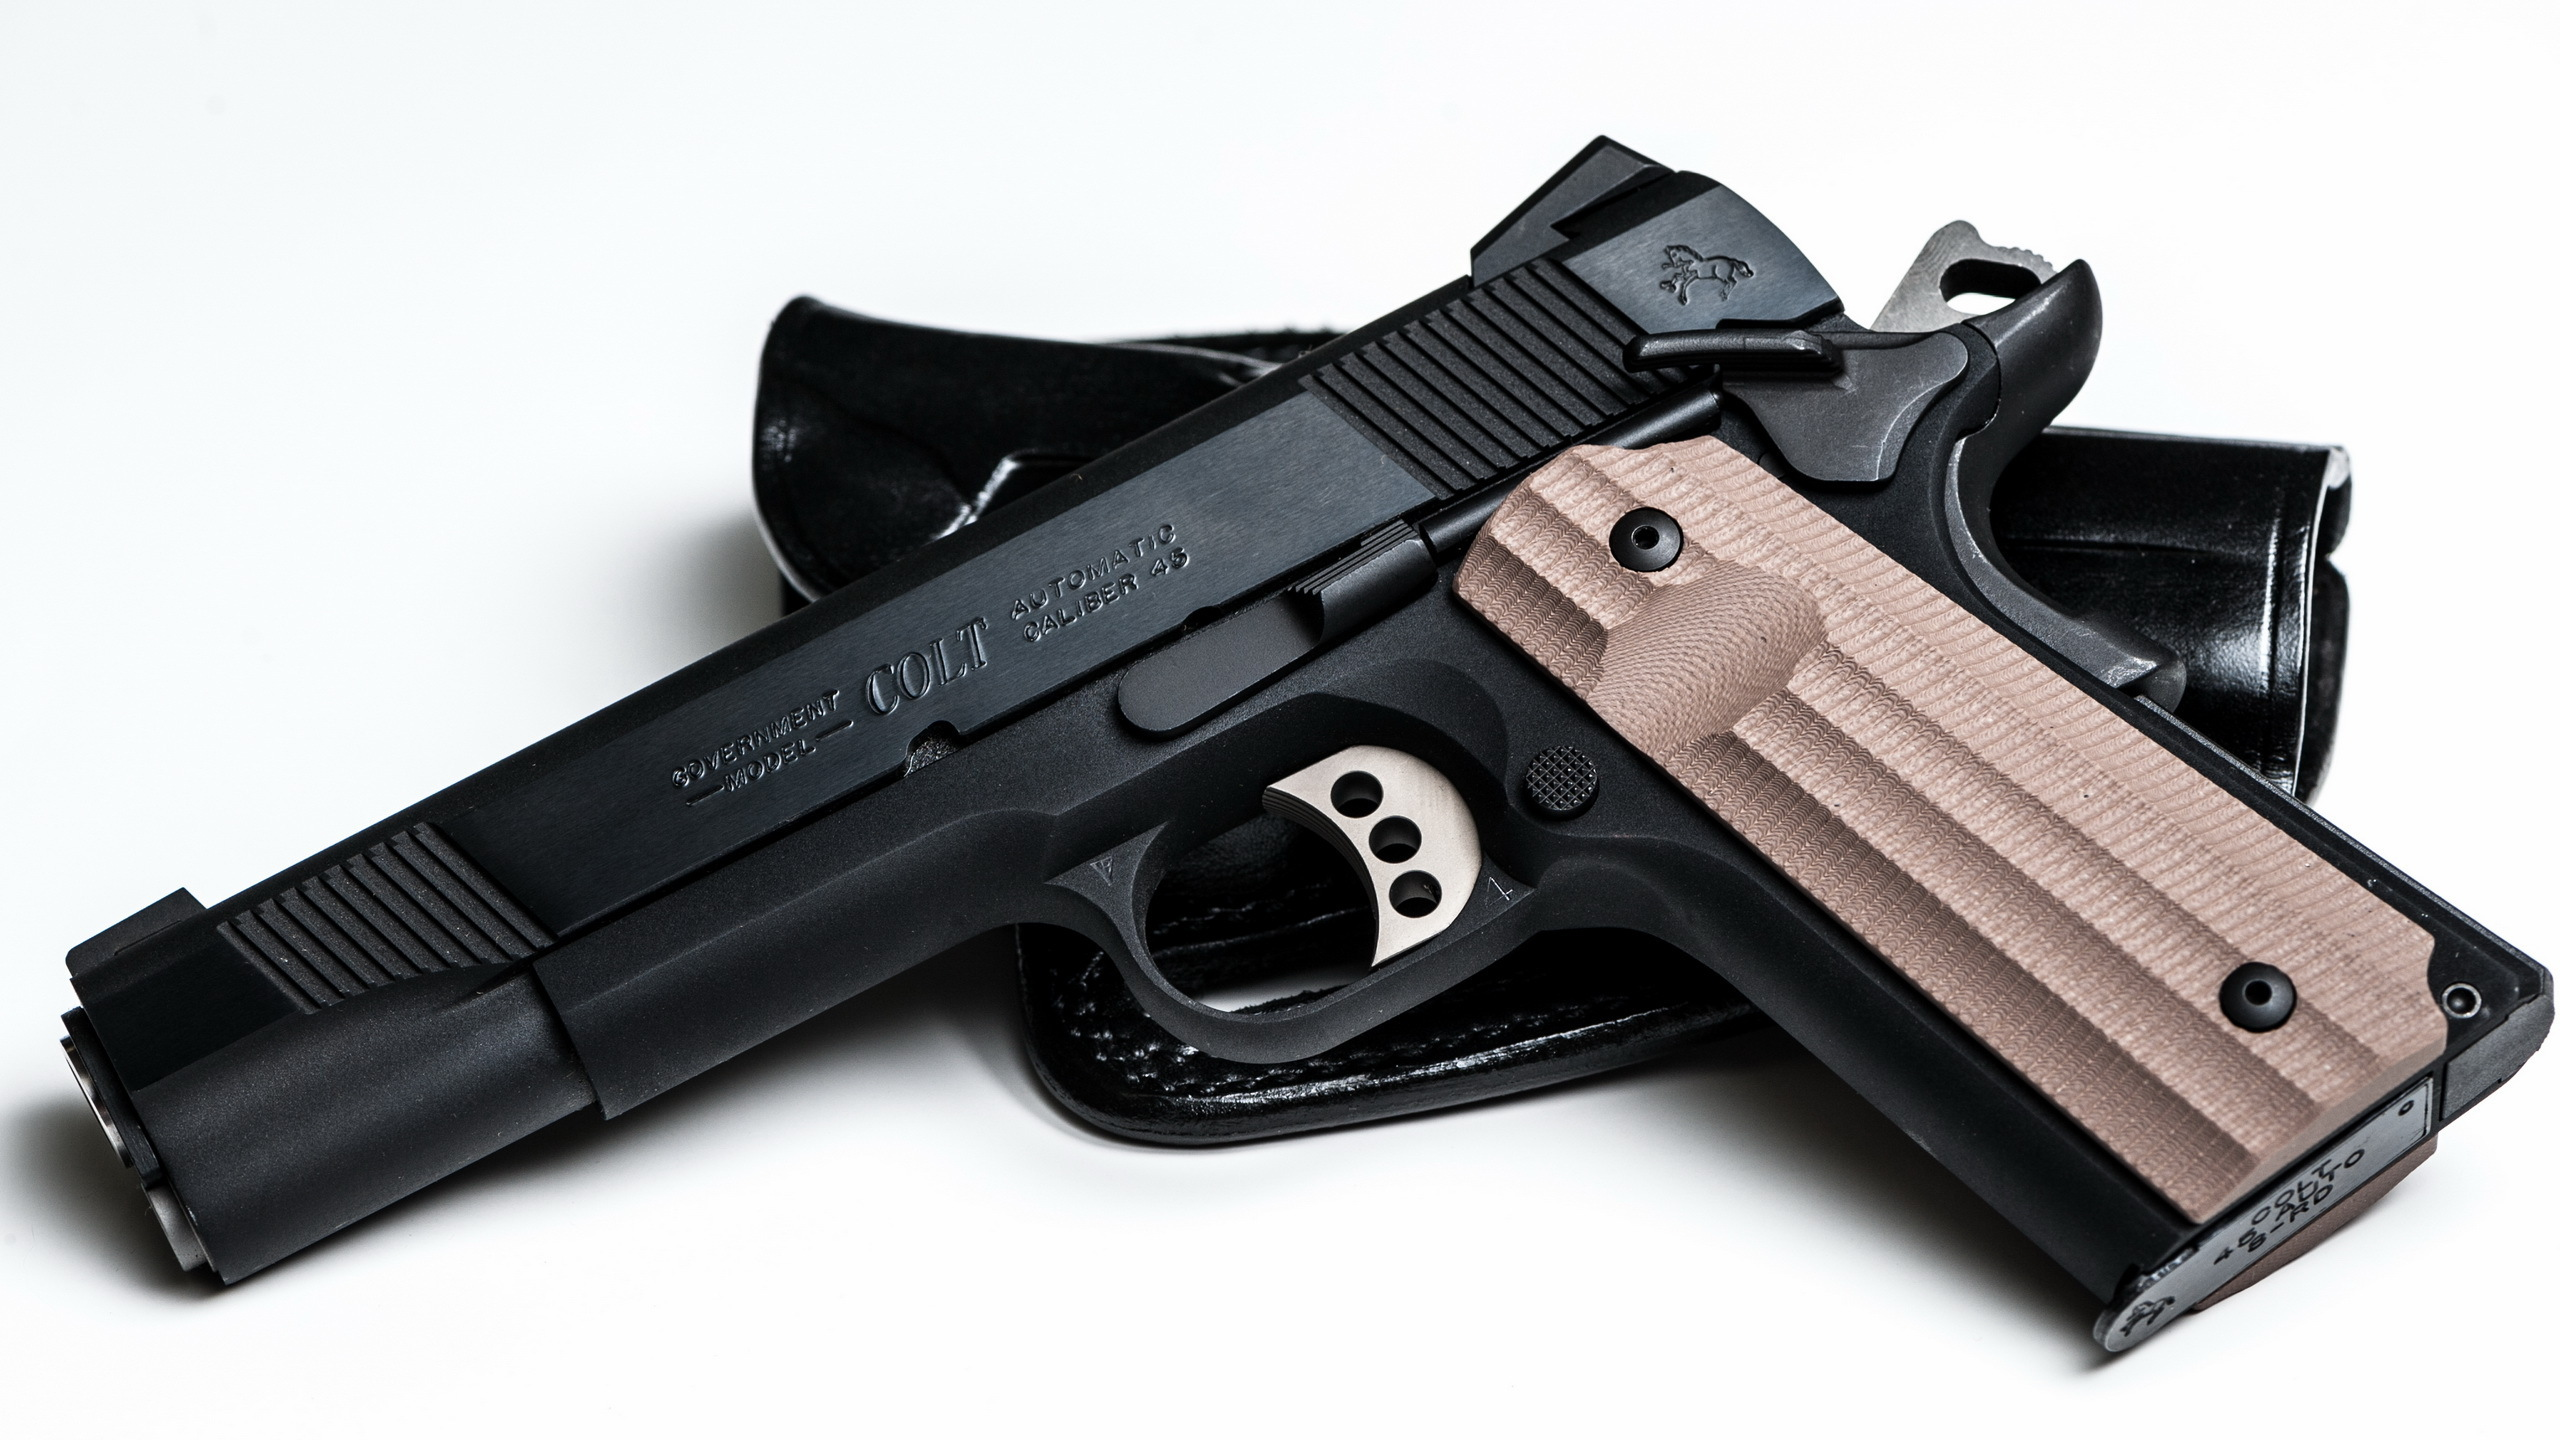 Weapons - Colt 1911  - Pistol - Weapon Wallpaper